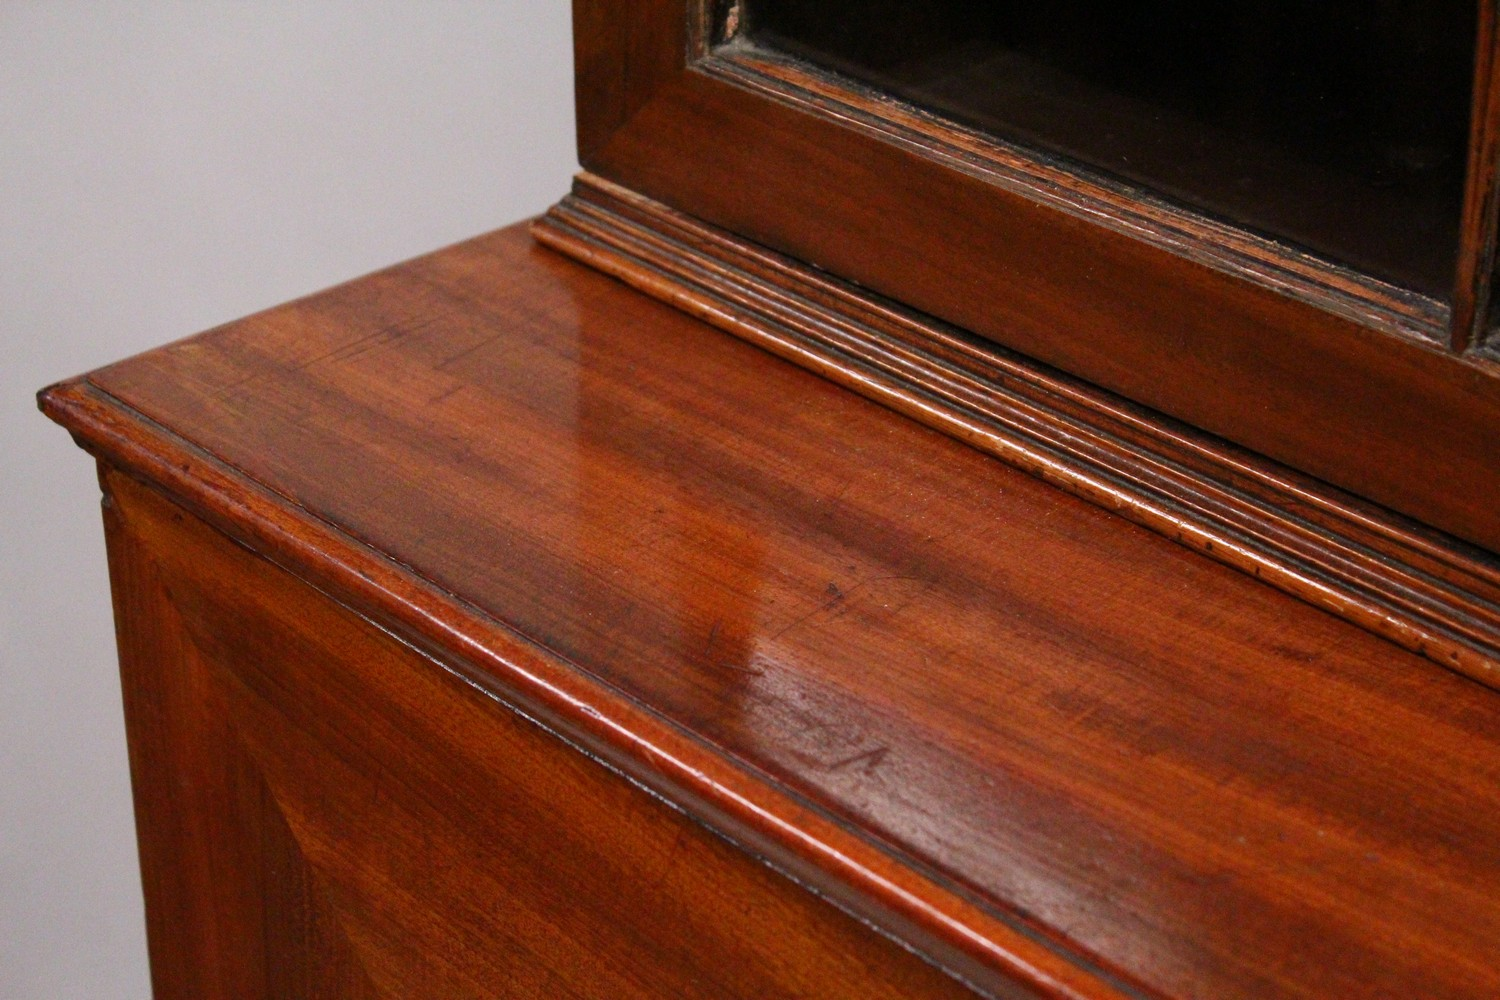 A GEORGE III DESIGN MAHOGANY CUPBOARD BOOKCASE, 19TH CENTURY, with a moulded cornice, pair of - Image 4 of 10